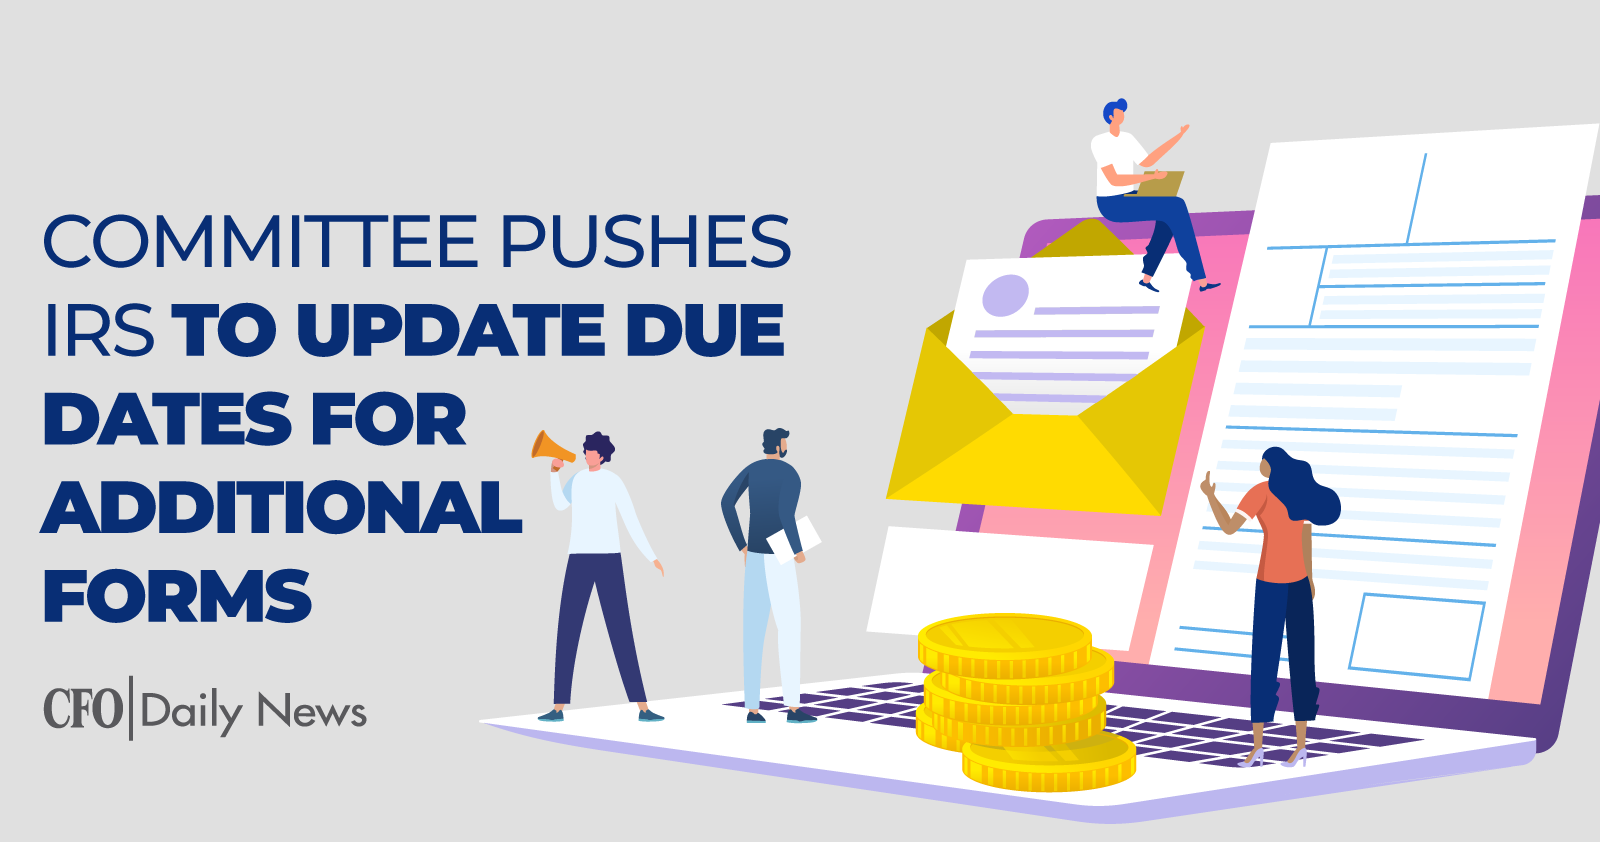 committee pushes IRS to update due dates for additional forms